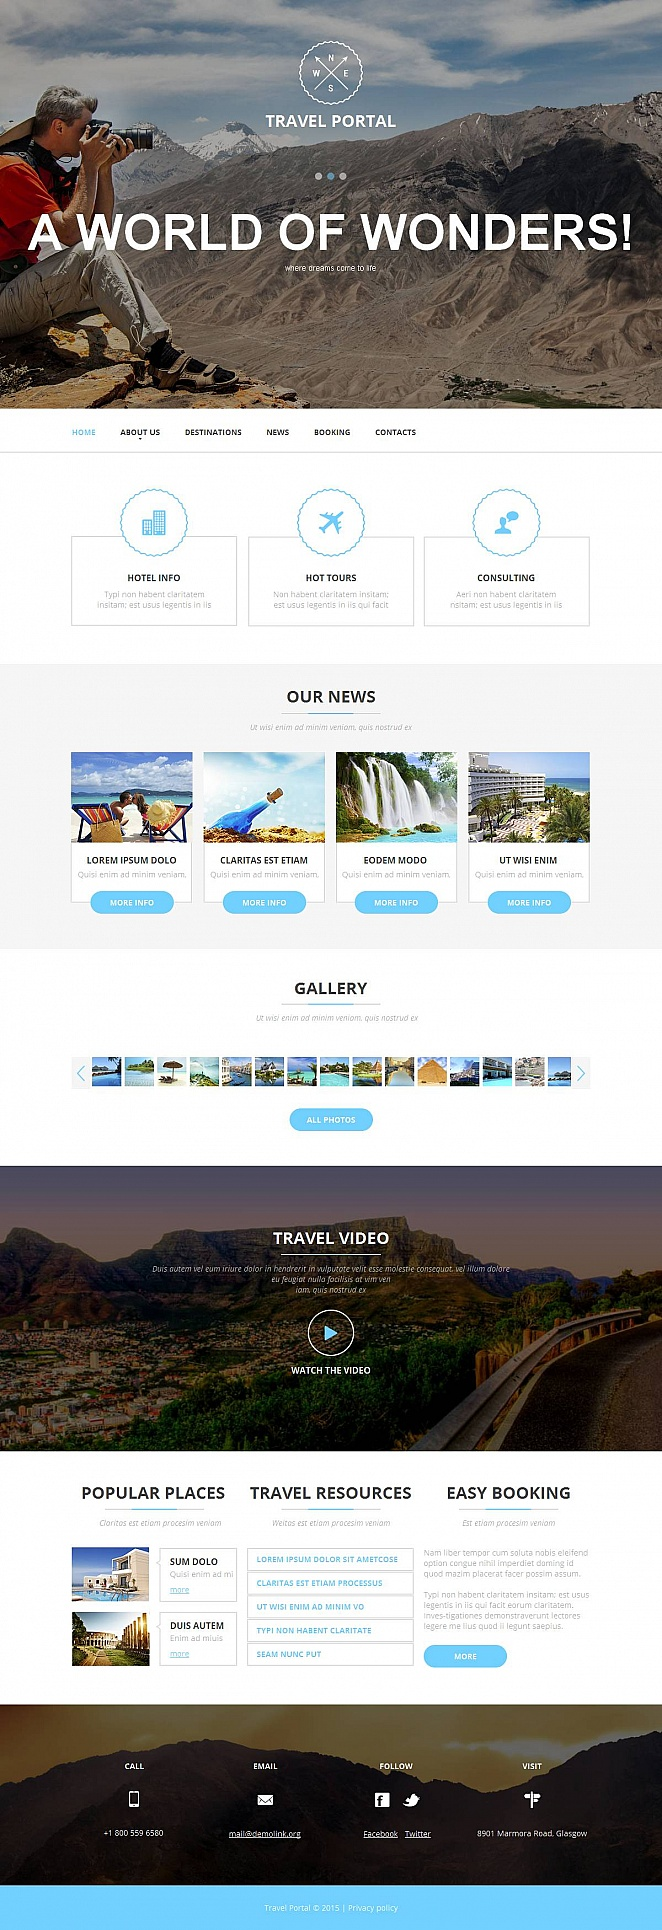 Travel Tours Website Template - image